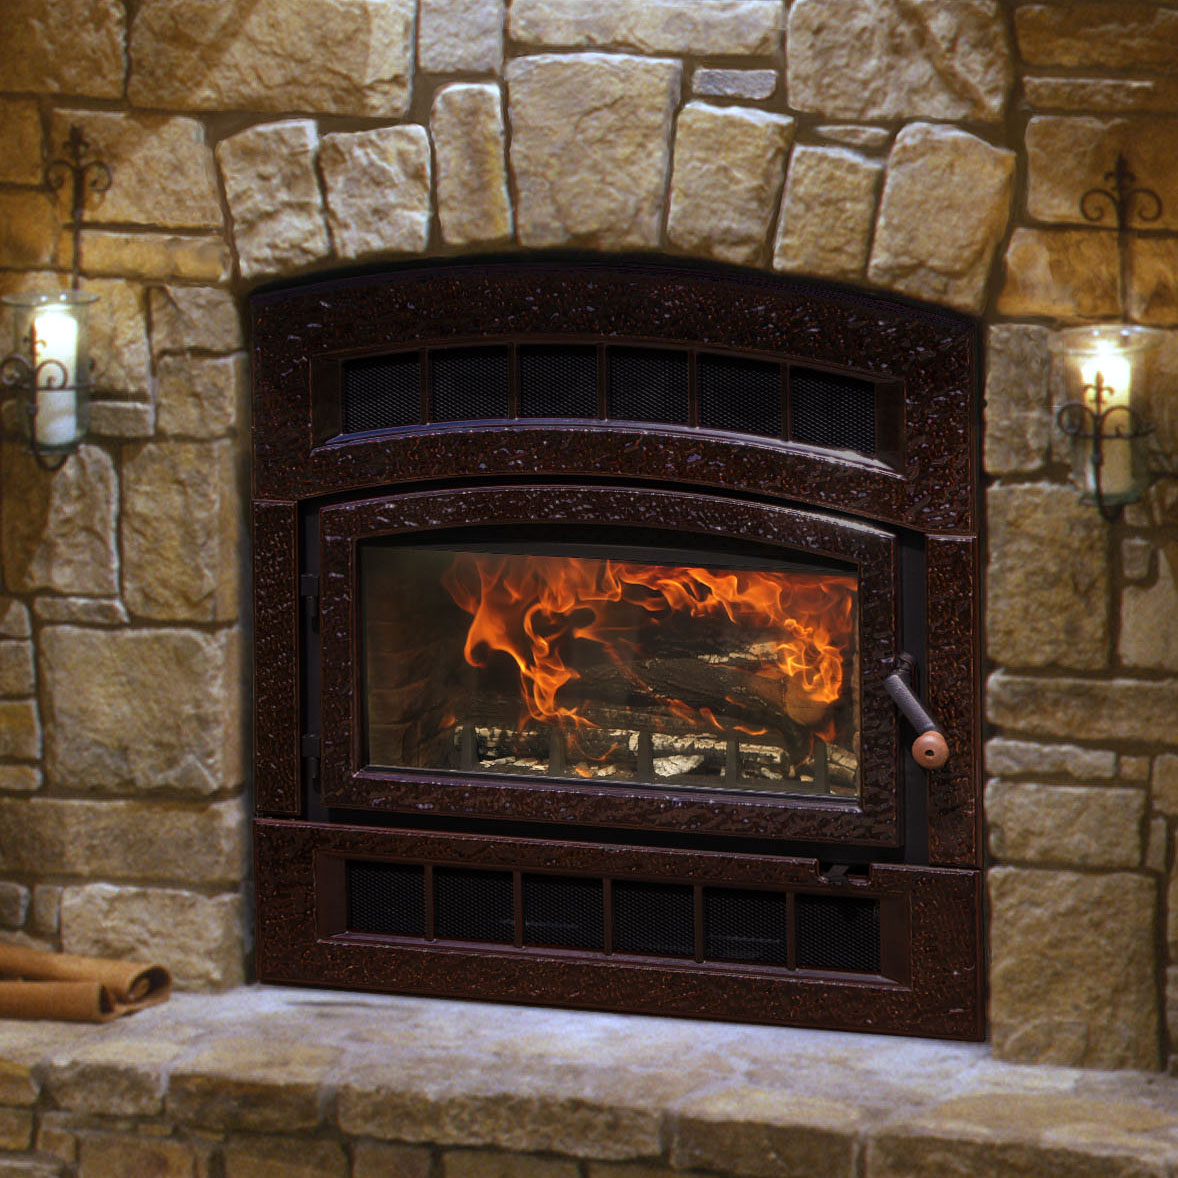 Hearthstone Fireplace Insert Unique 51 Best Wood Burning Stove Fireplaces Images